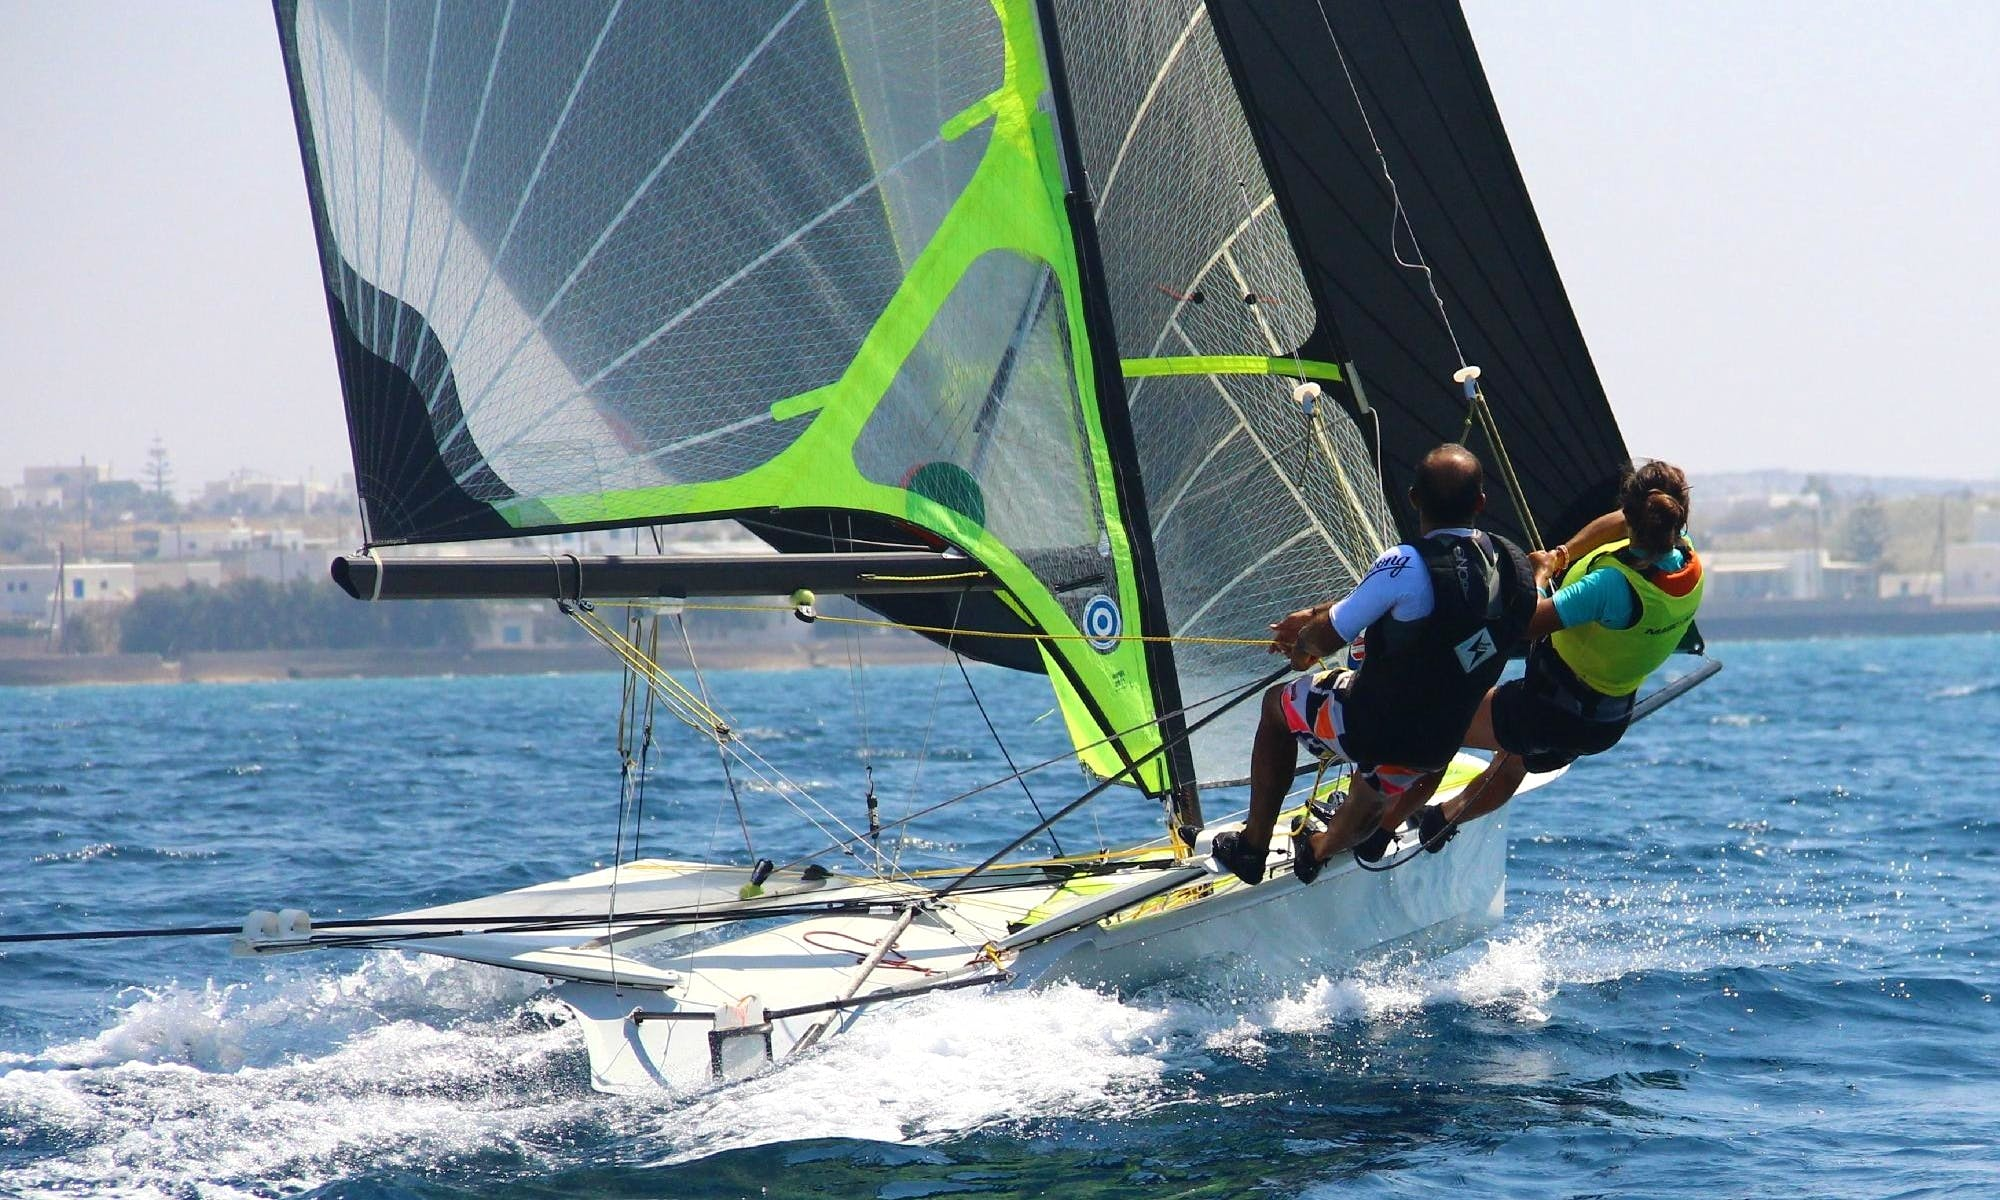 Skiff Private Sailing Lessons in Paros - Naoussa Sailing Team